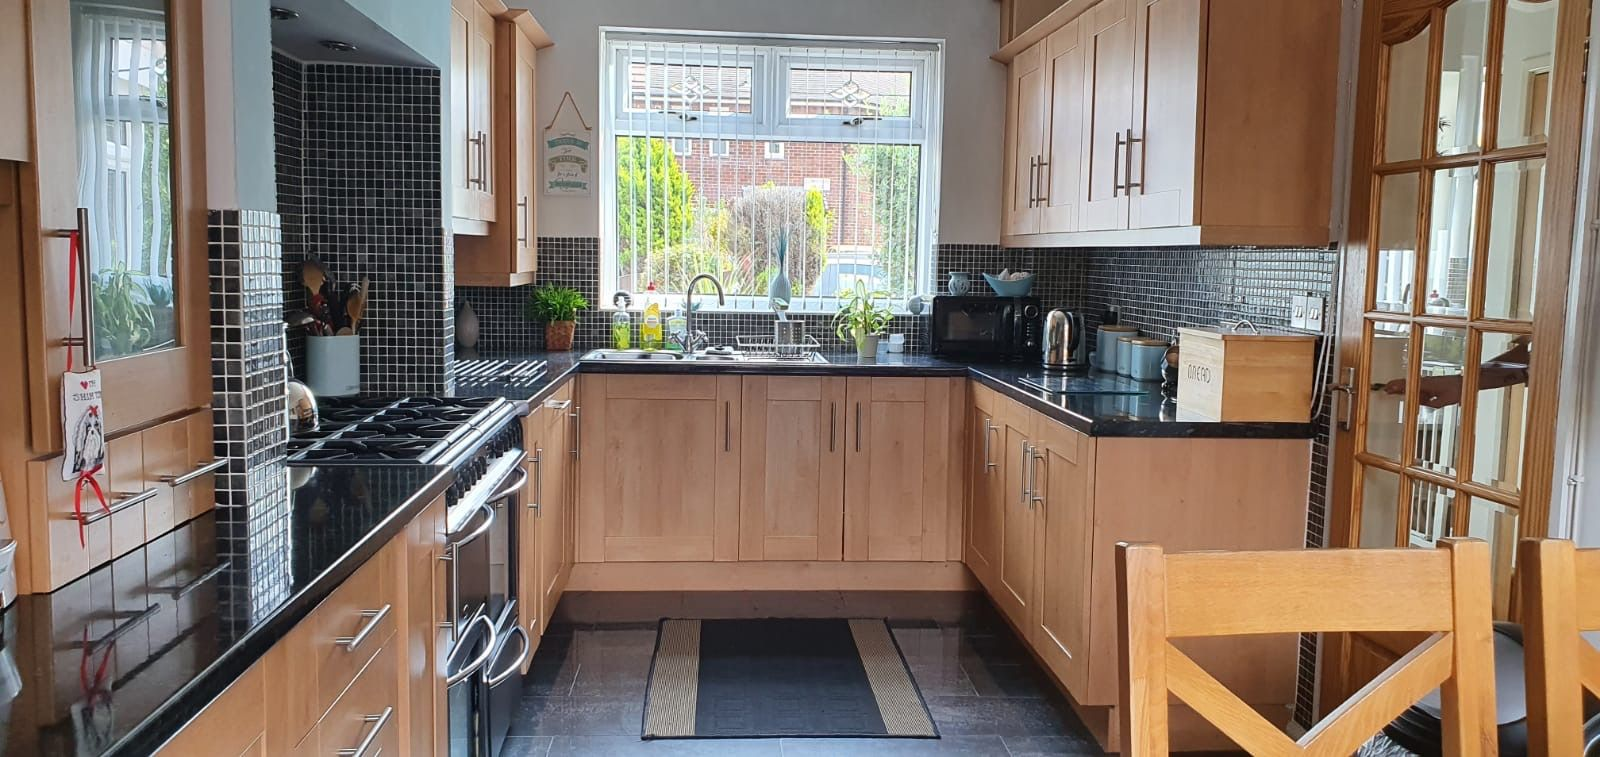 3 bedroom mid terraced house SSTC in Manchester - Photograph 4.